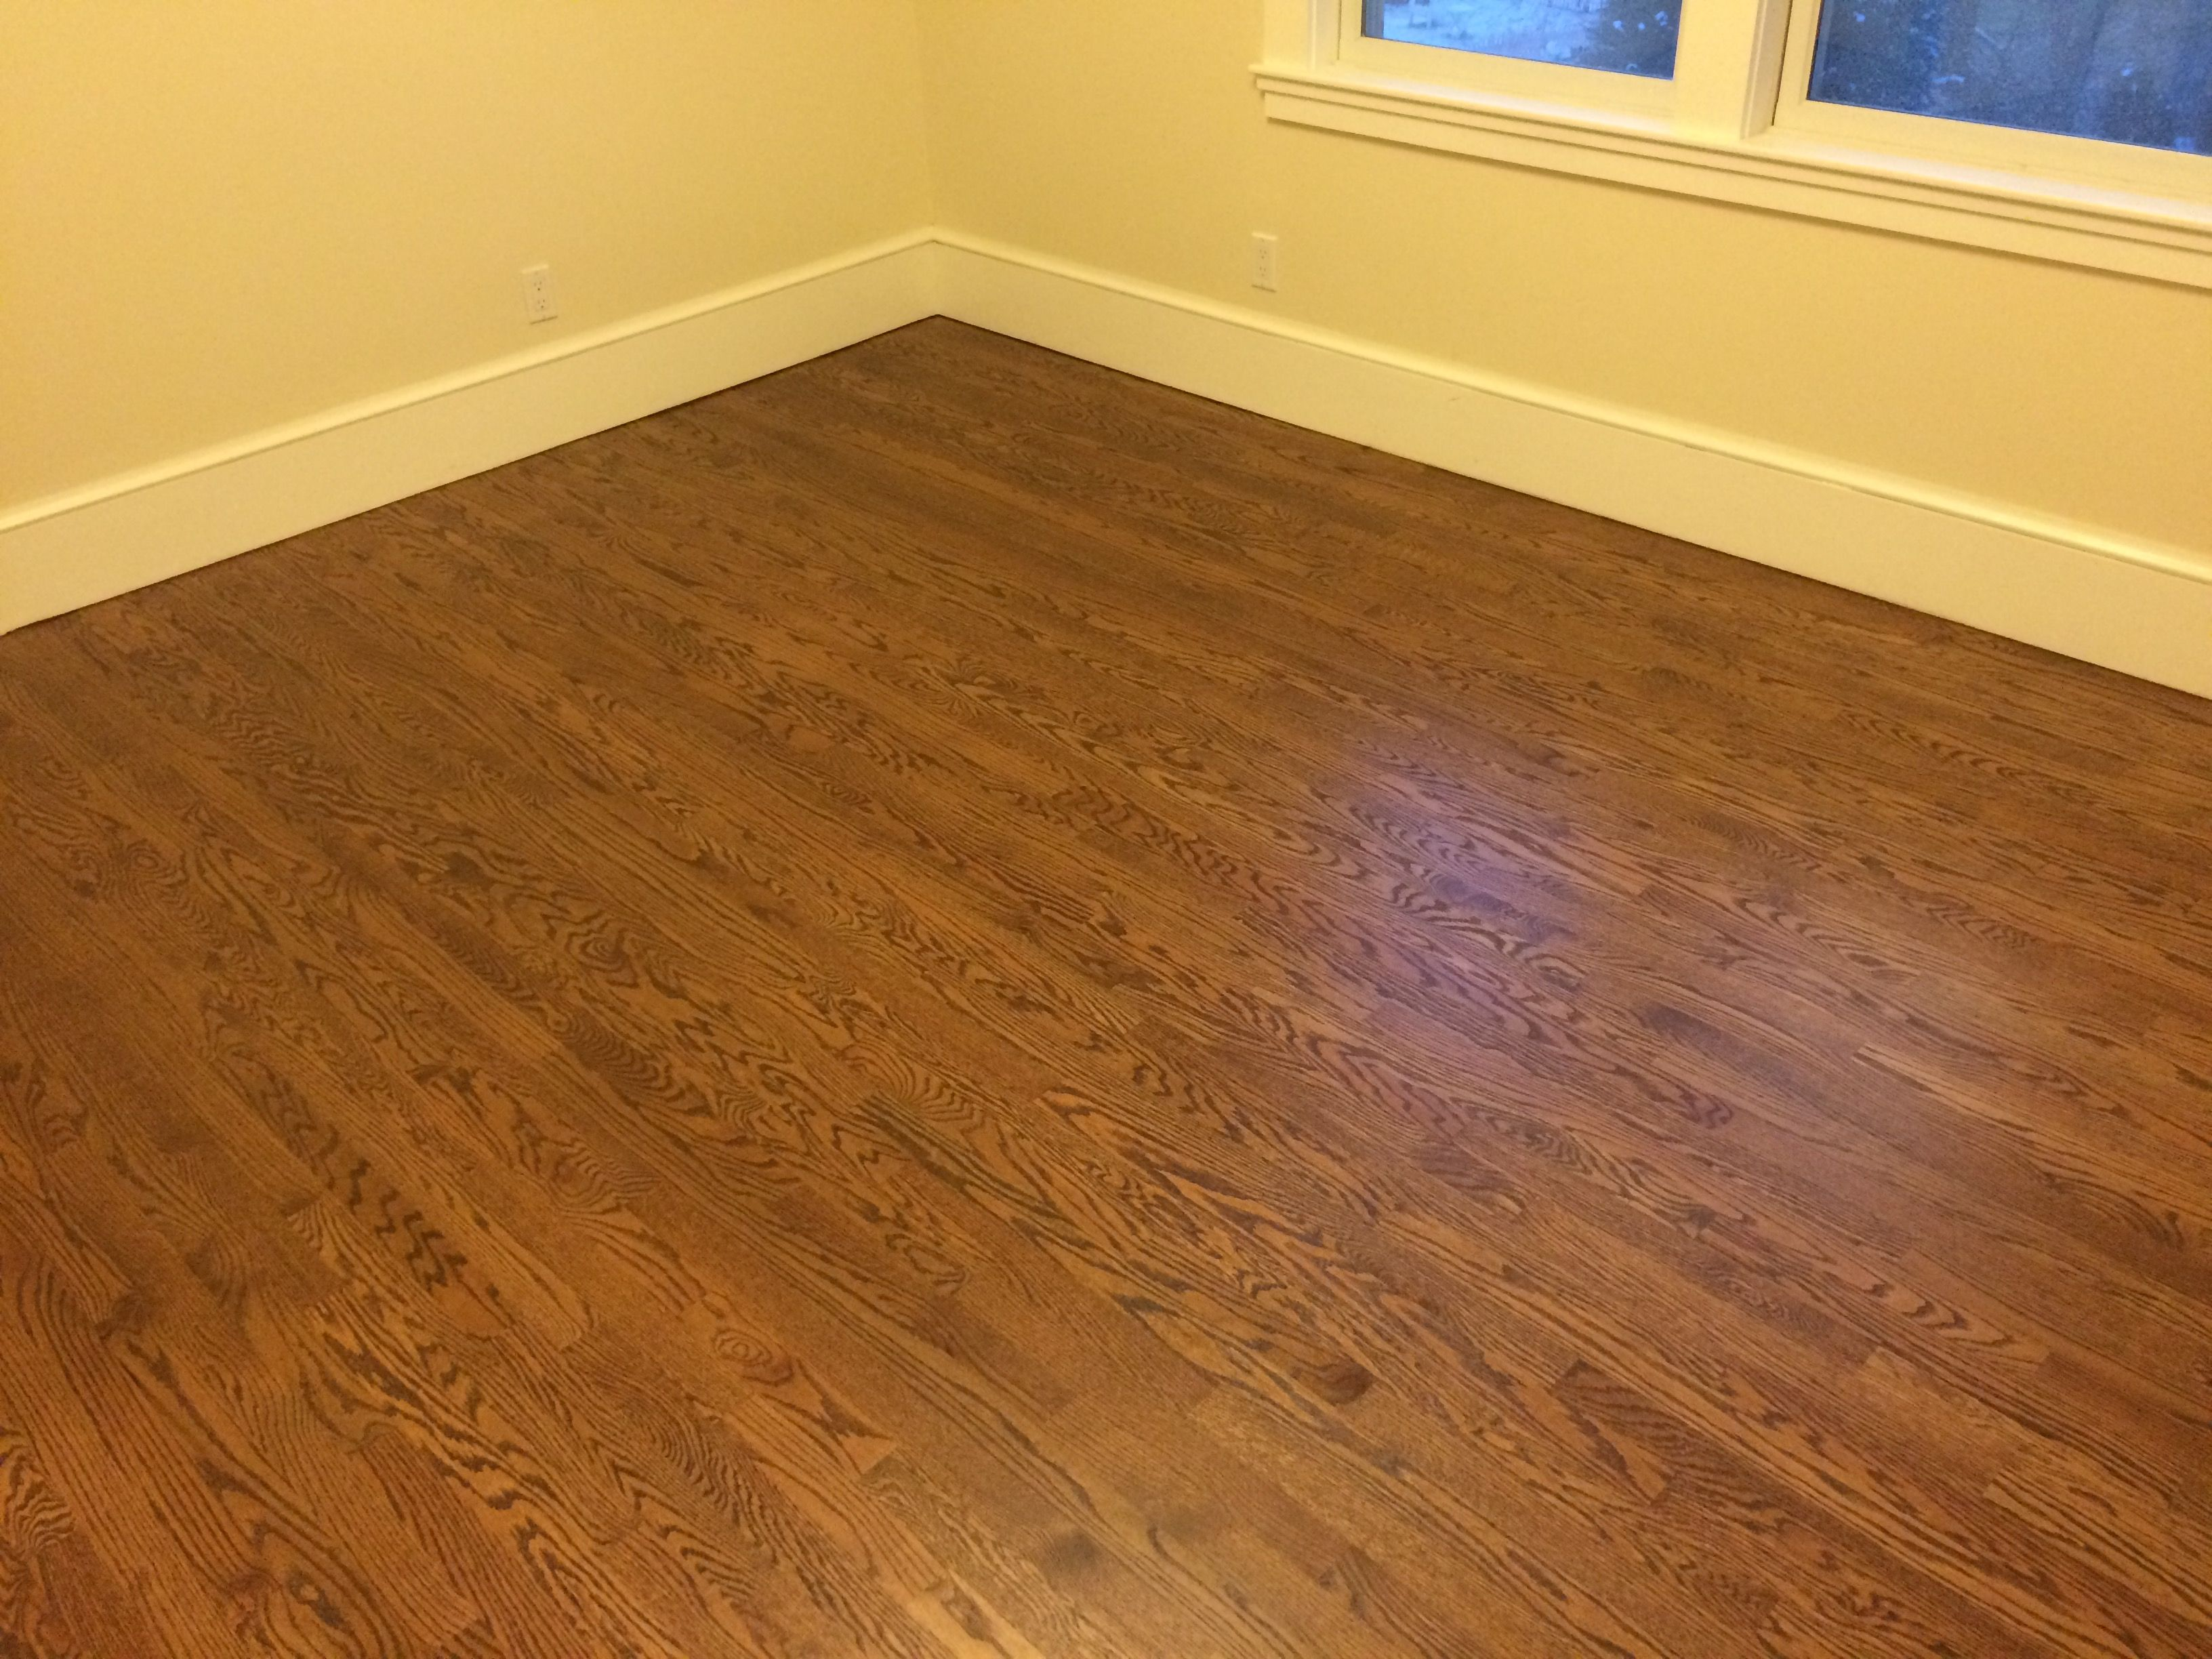 Minwax special walnut over red oak hardwood floors for Red oak hardwood flooring